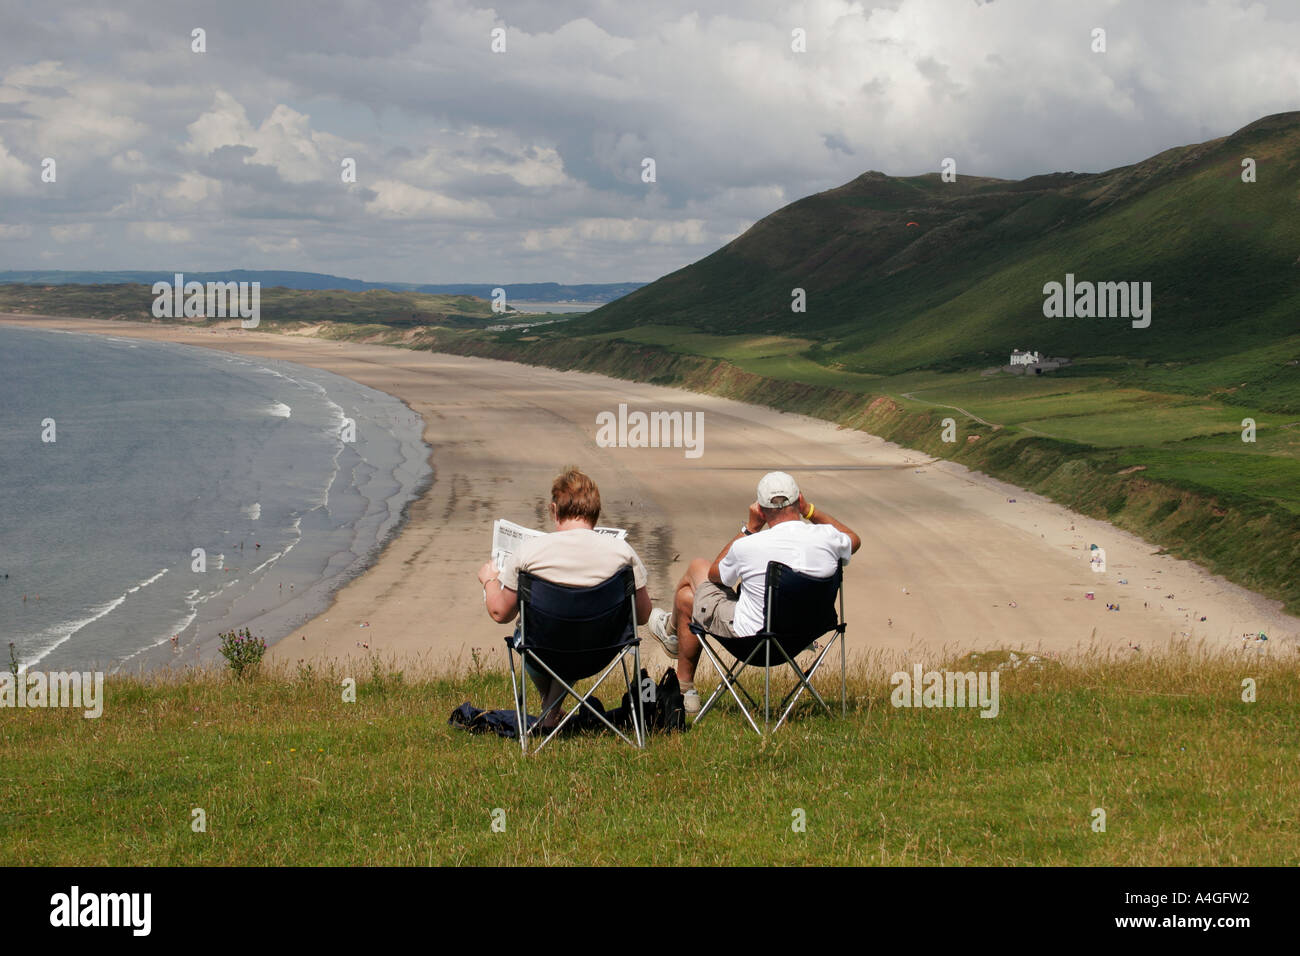 COUPLE IN DECKCHAIRS, OVERLOOKING RHOSSILI BEACH, GOWER PENINSULA, SOUTH WALES, U.K. - Stock Image